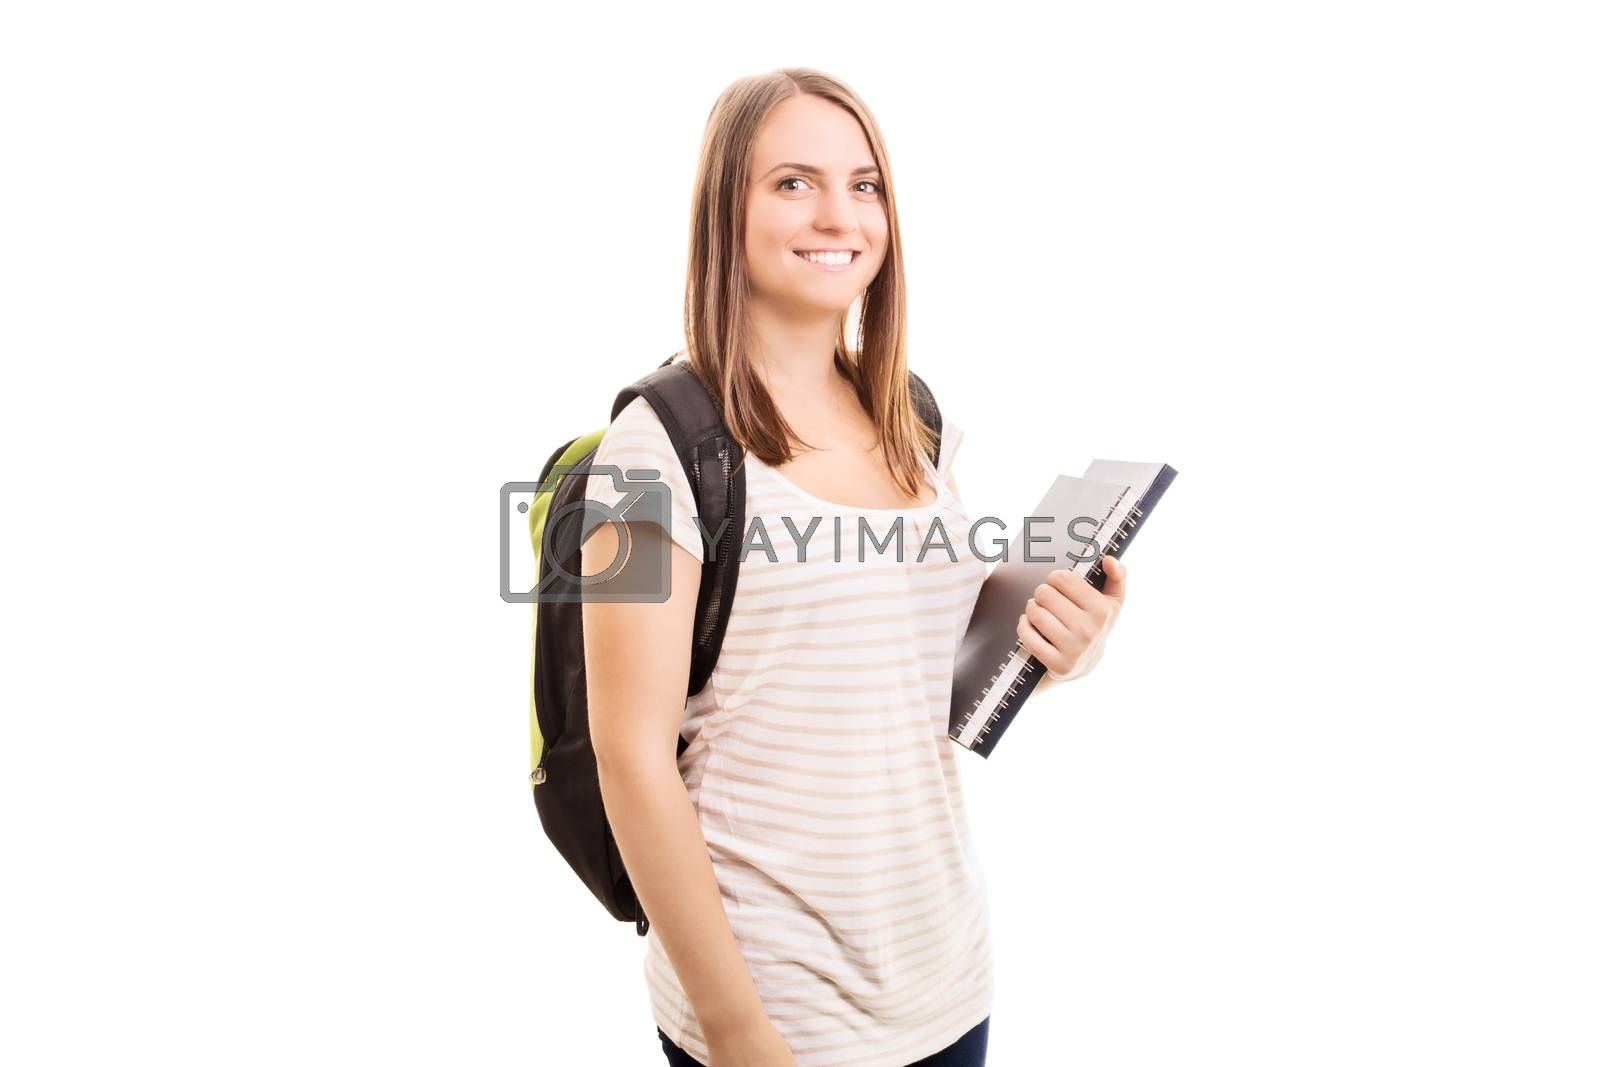 Back to school, finally! Young girl carrying a backpack, some books while going to school, isolated on white background.